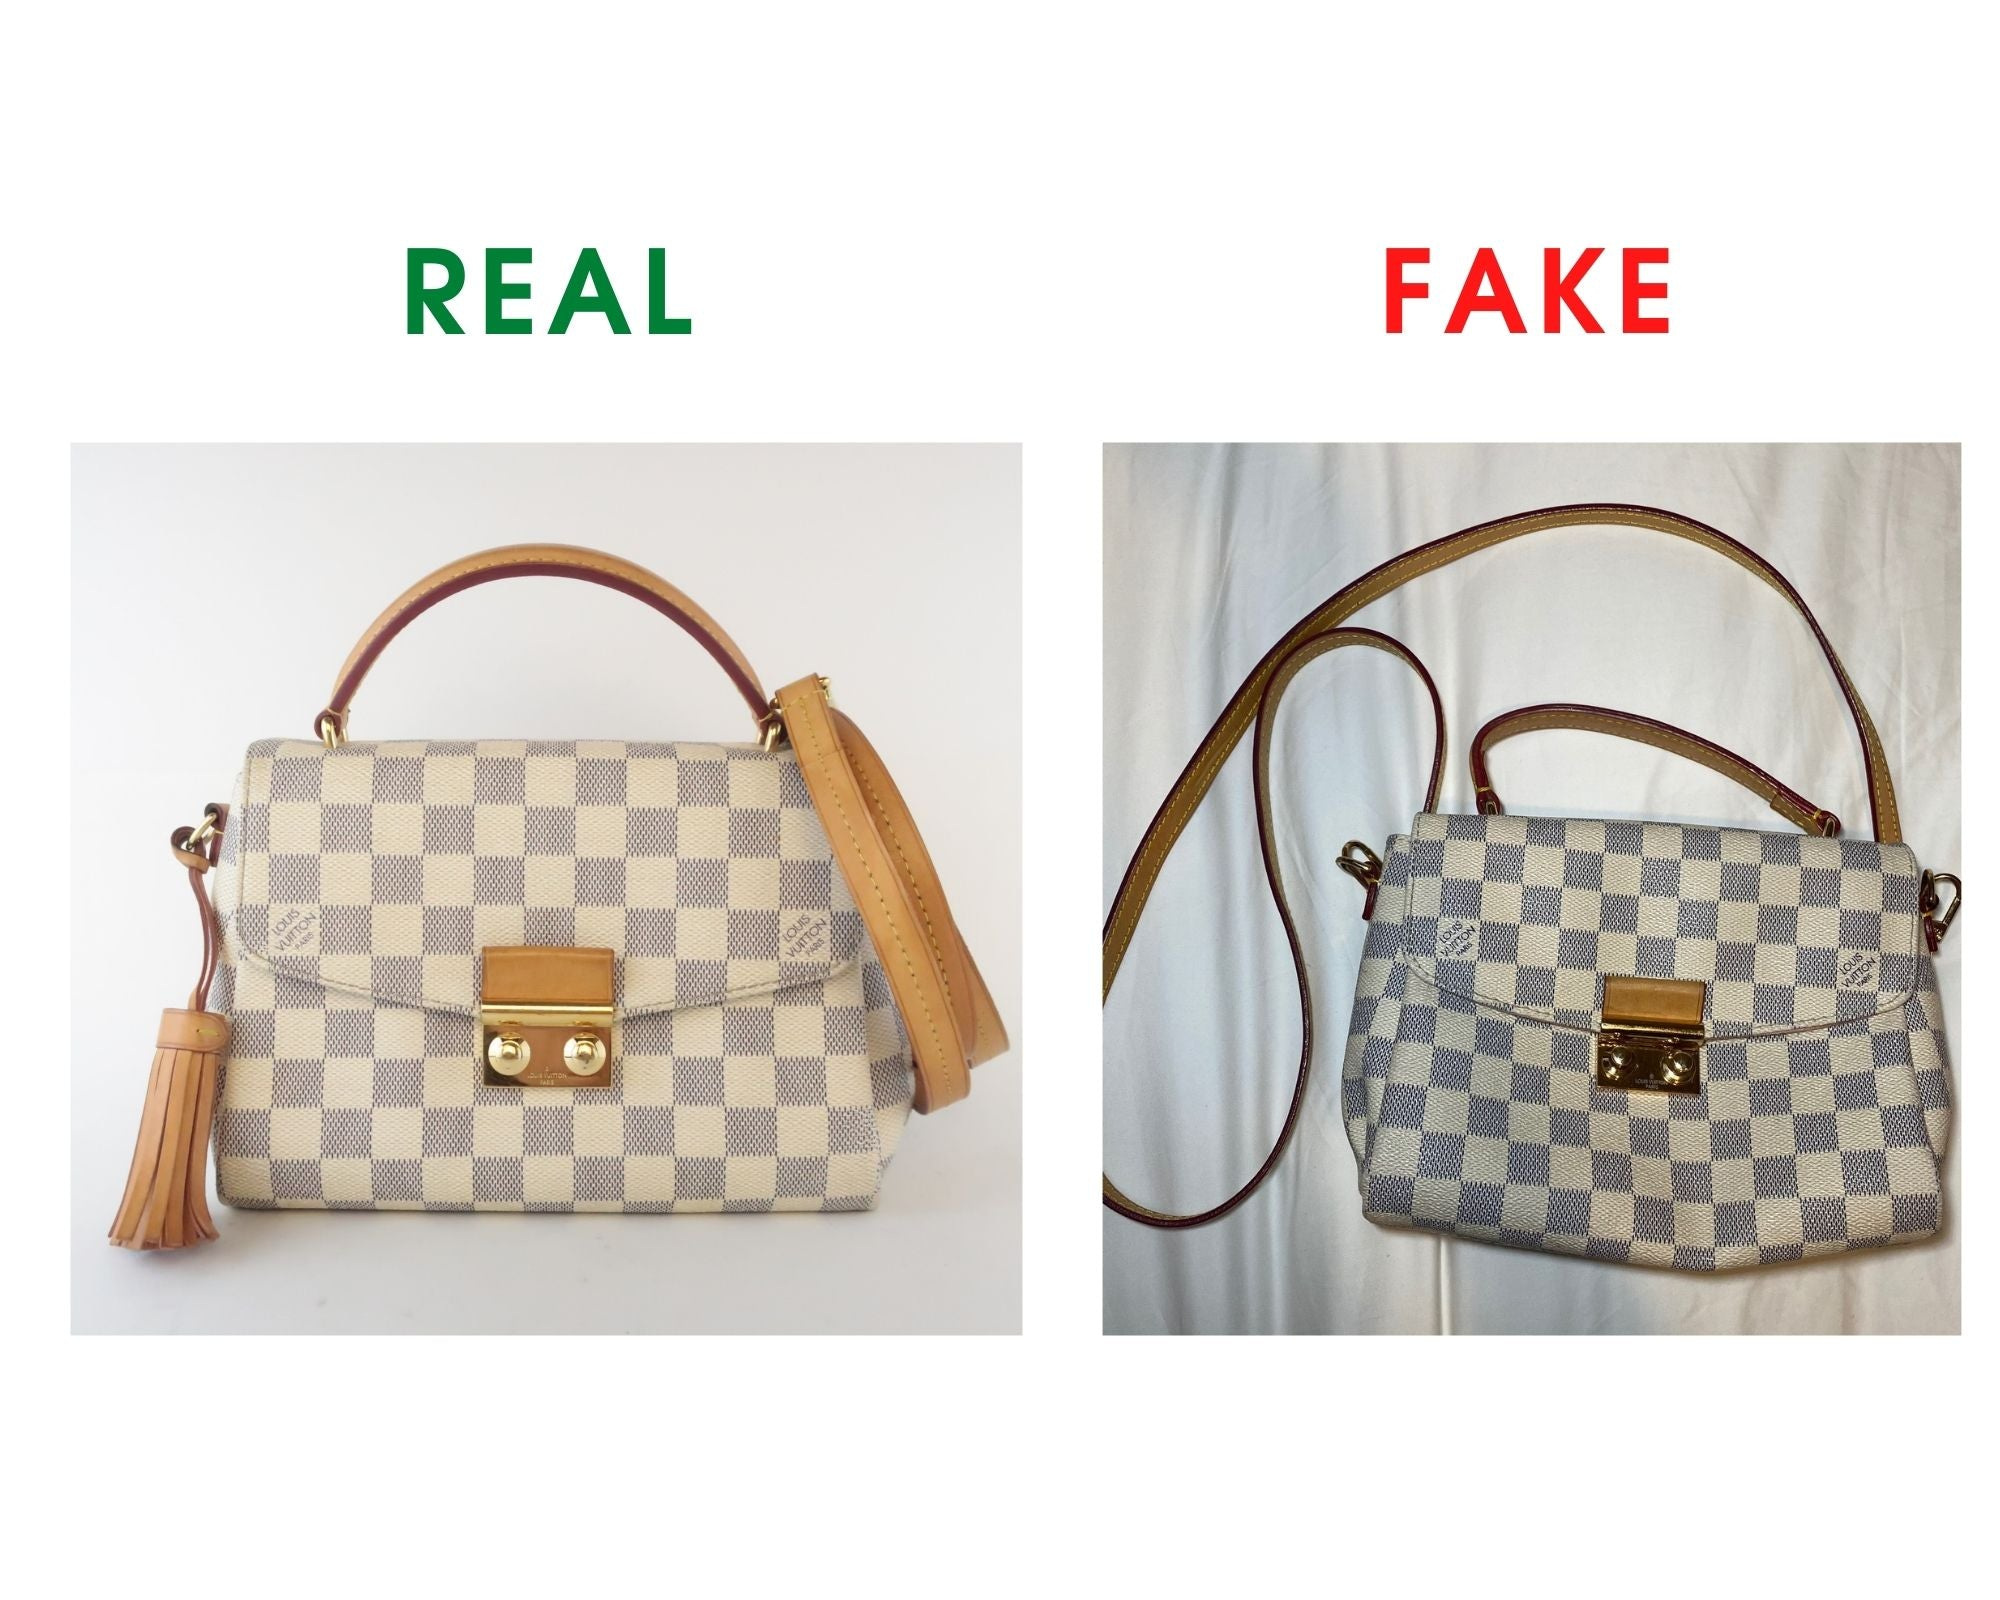 Louis Vuitton Croisette Bag Review and Real vs Fake Comparison (With Real Photos) Front